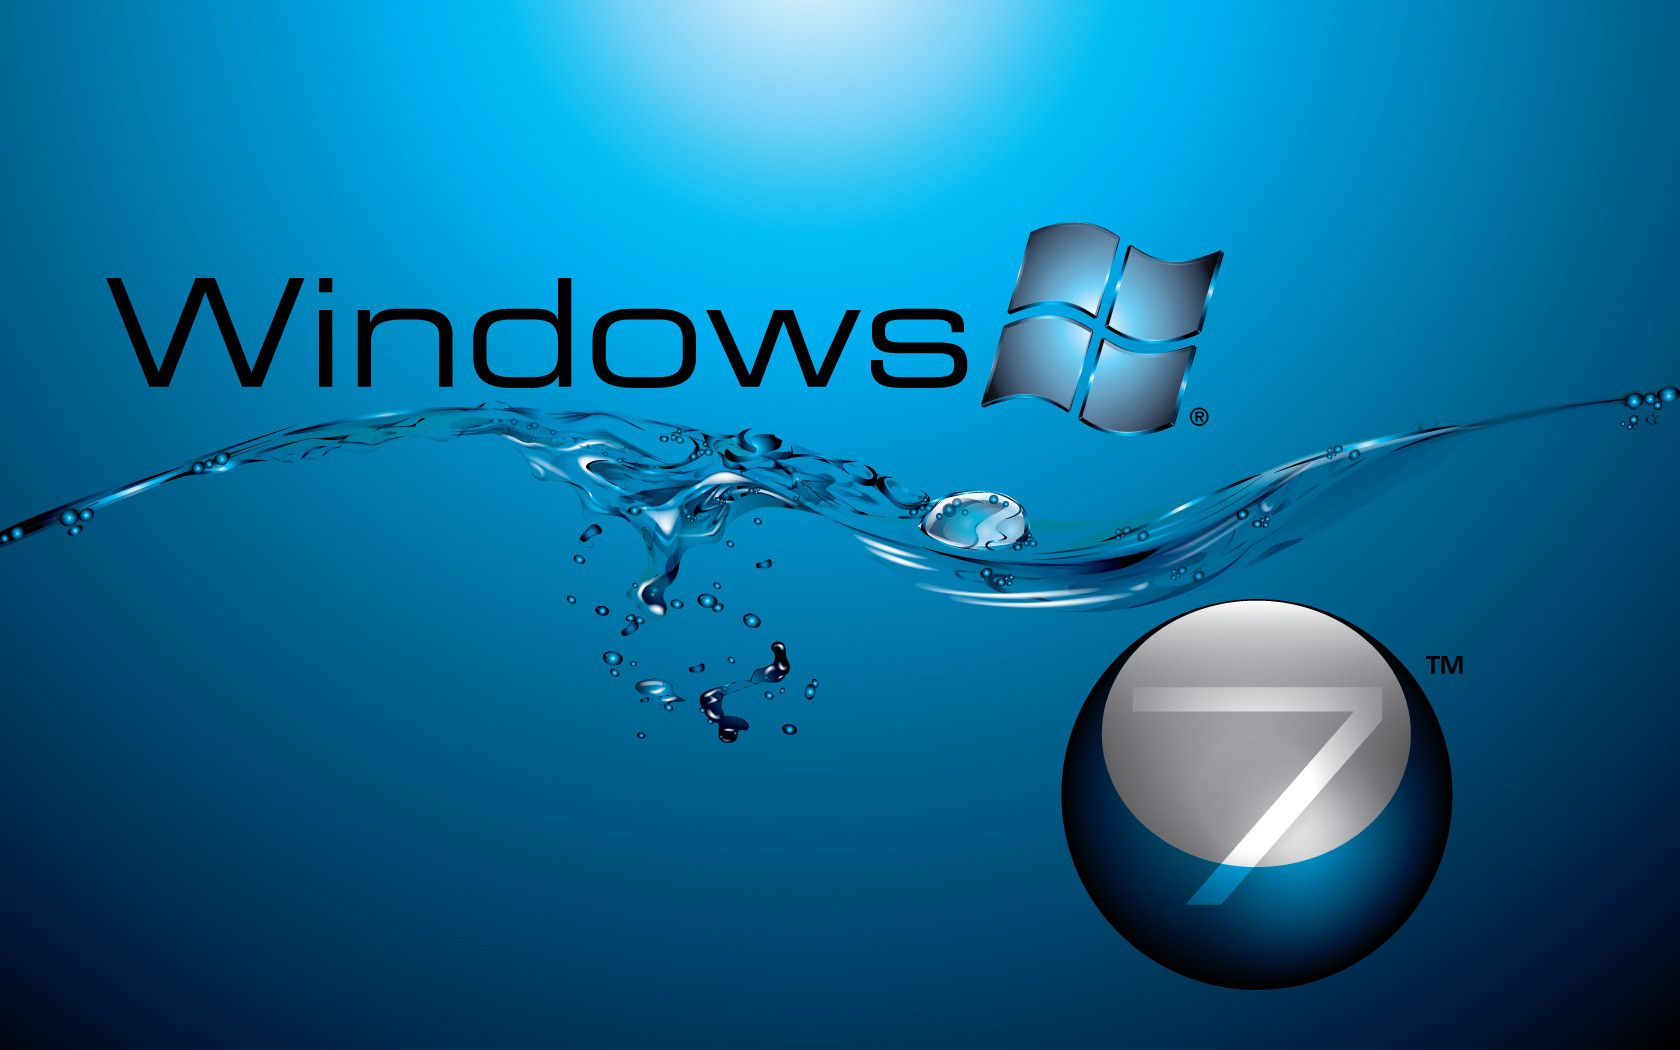 Windows 7 HD Wallpapers